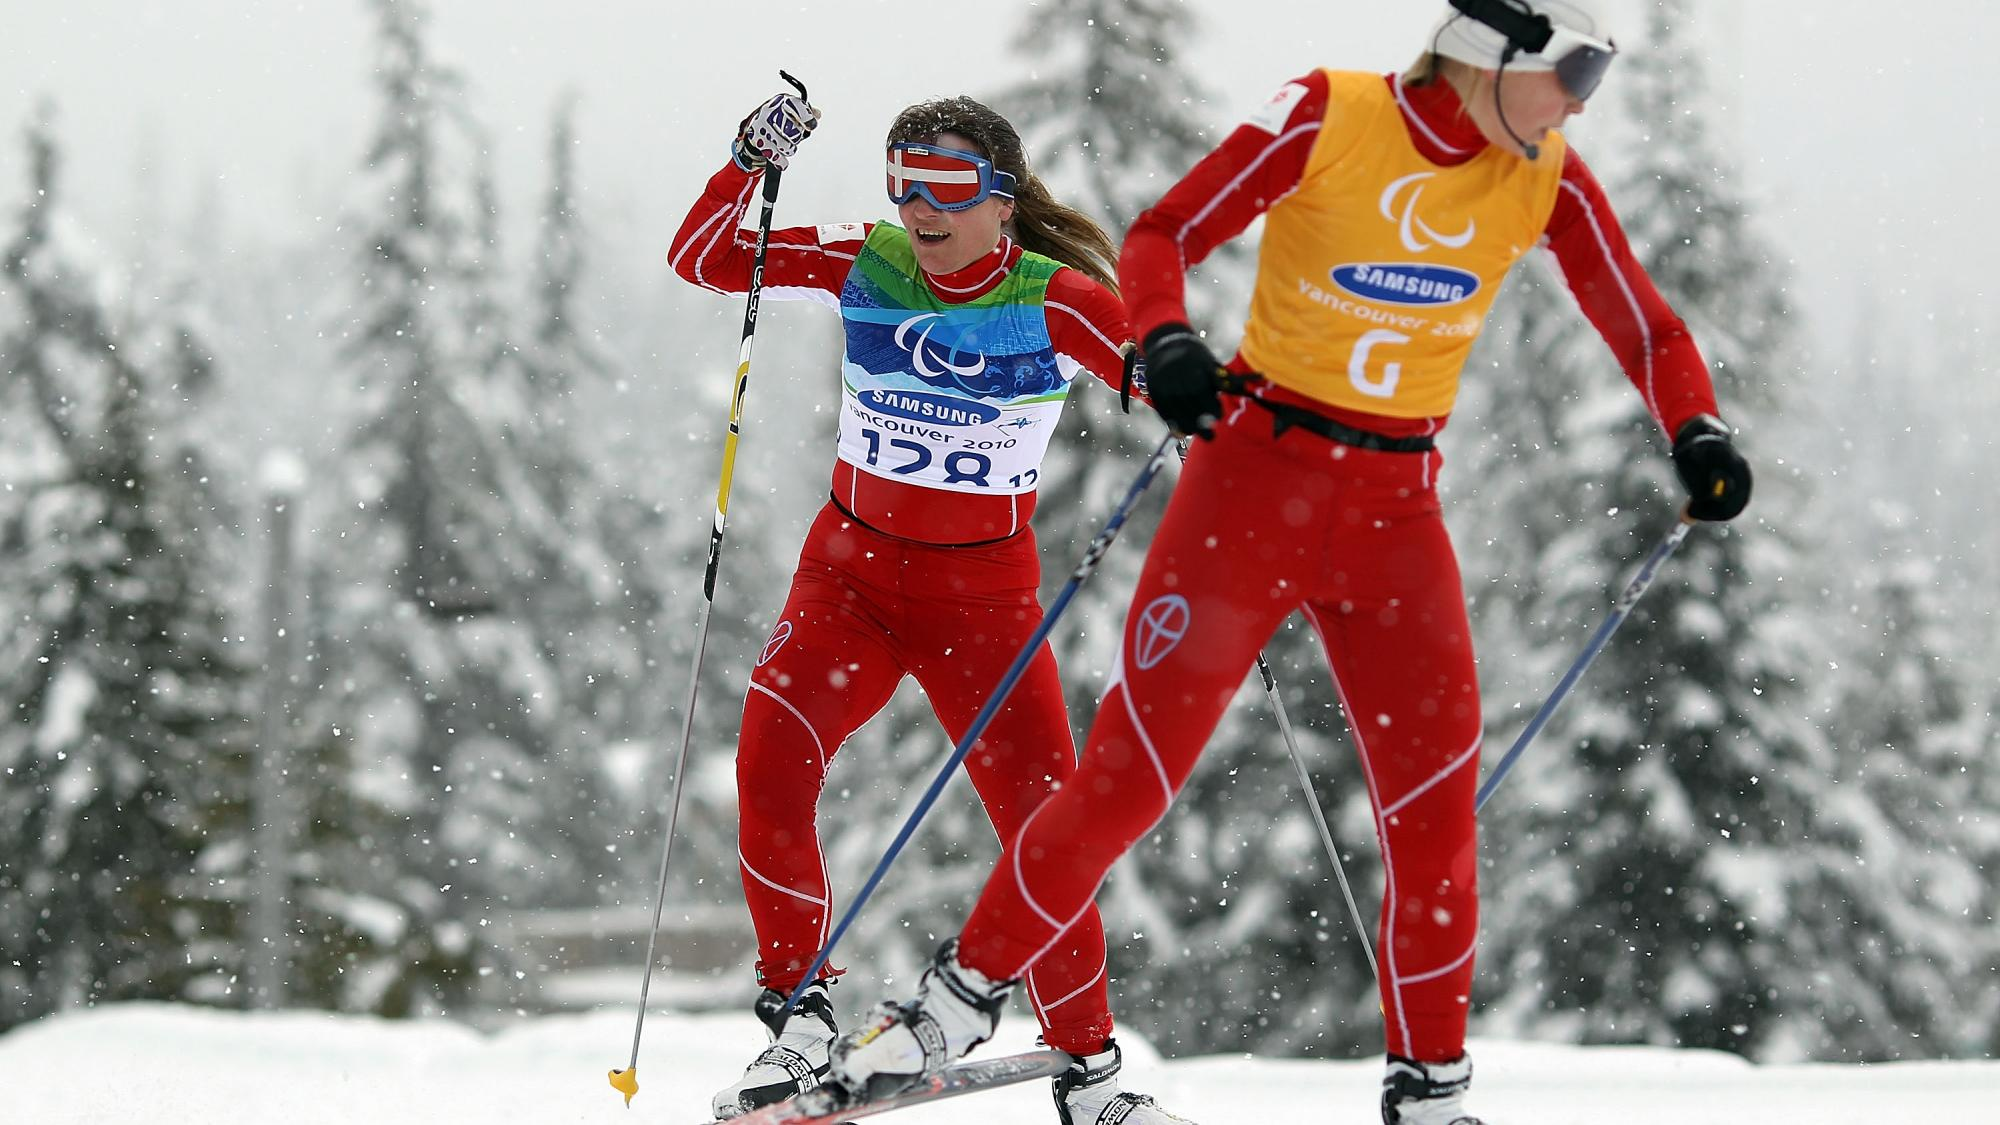 Anne-Mette Bredahl of Denmark competes during the Women's 3km Pursuit Visually Impaired Biathlon on Day 2 of the 2010 Vancouver Winter Paralympics